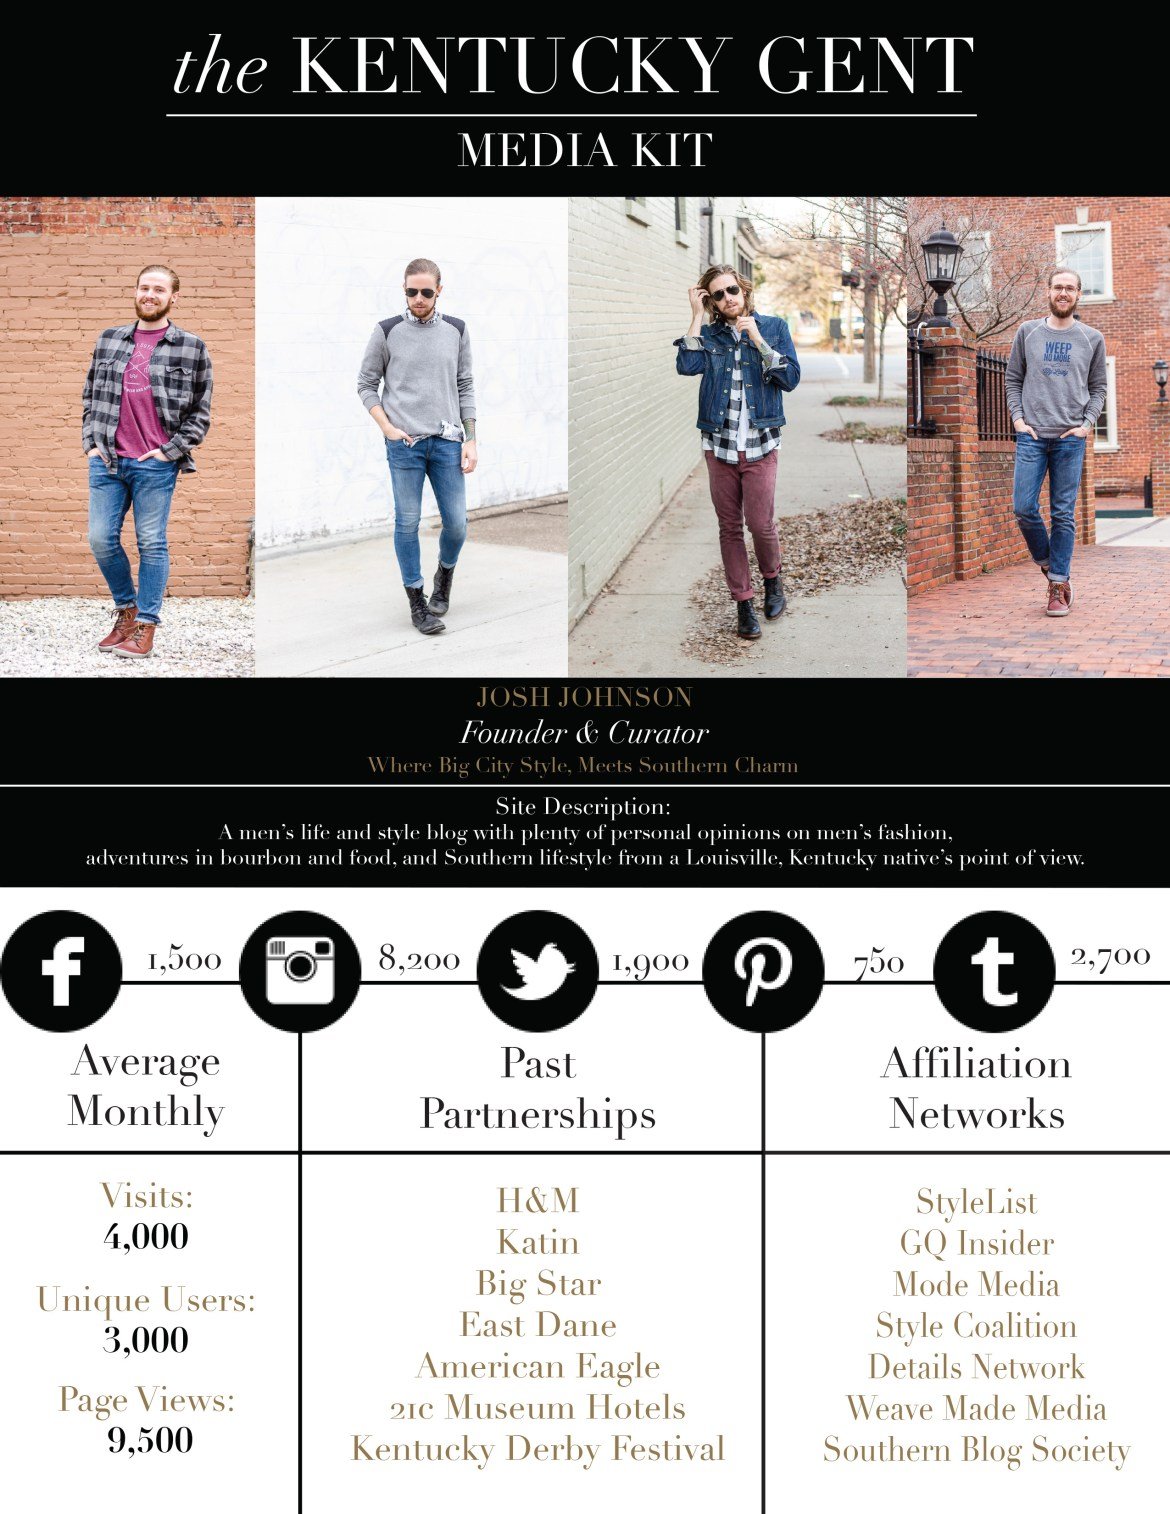 The Kentucky Gent, a men's fashion and lifestyle blogger, shares how to make a blogger media kit.